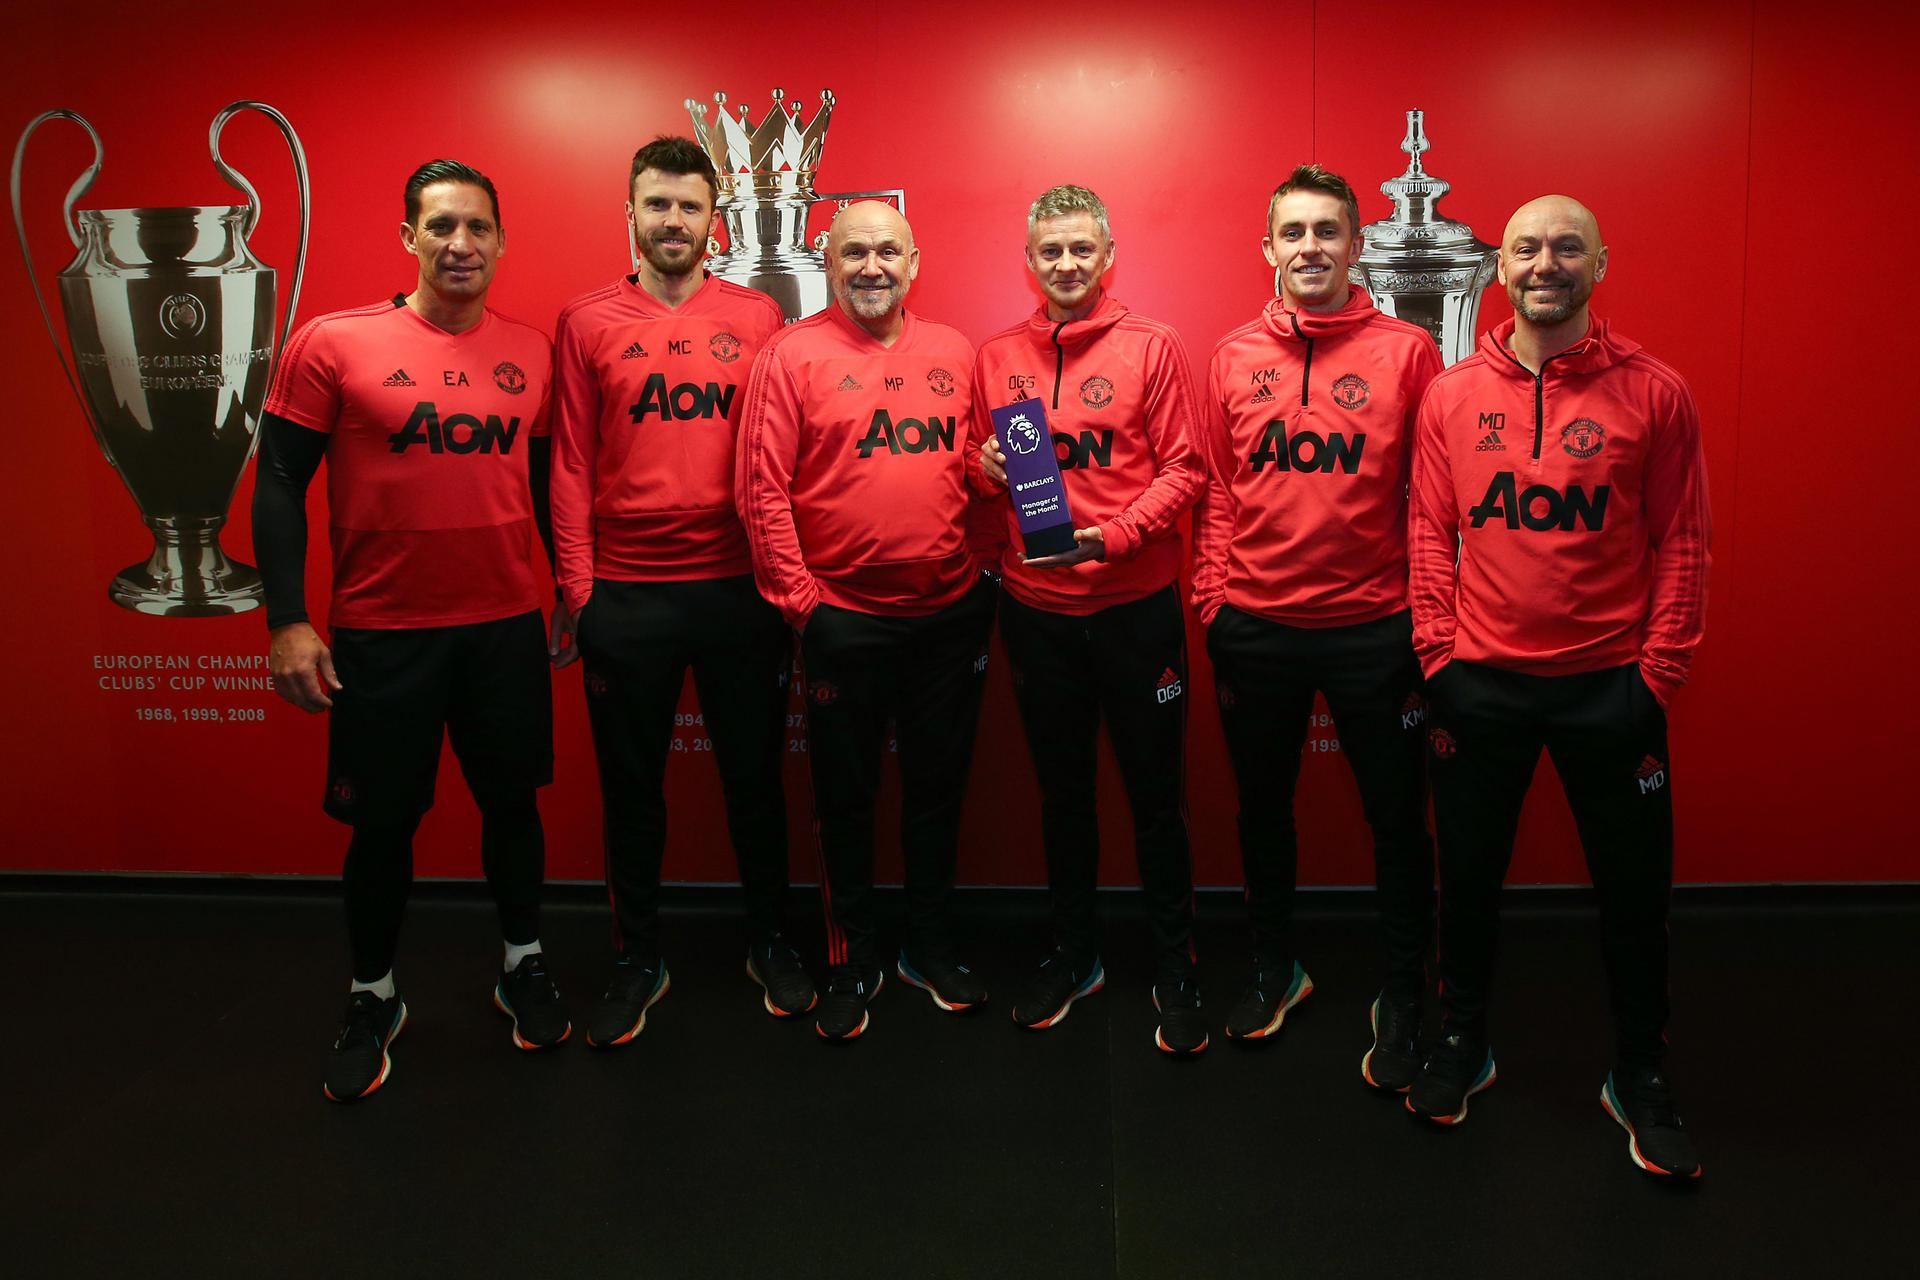 Ole Gunnar Solskjaer with his coaching staff.